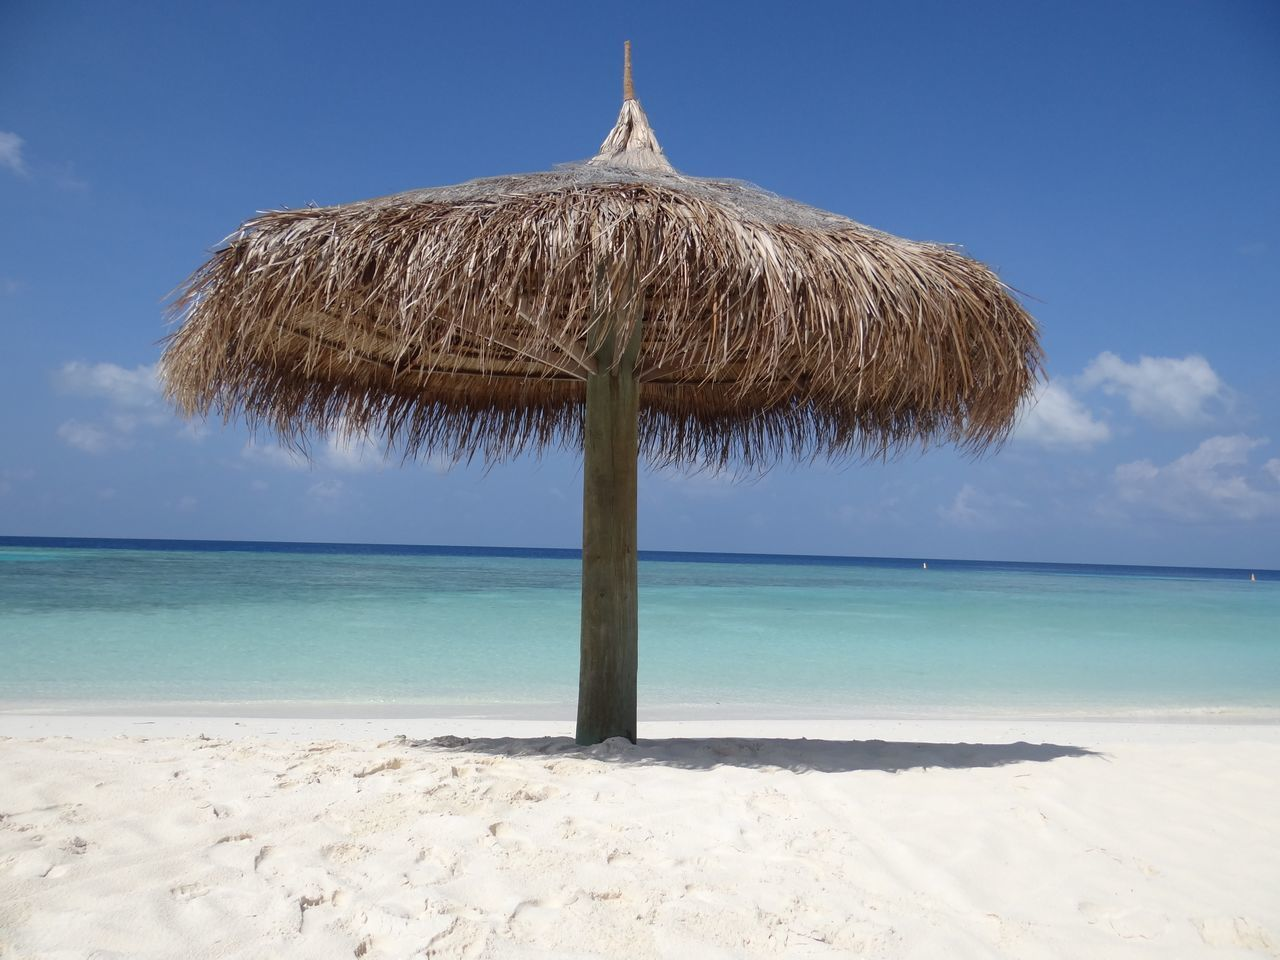 Thatched roof umbrella at beach against sky on sunny day